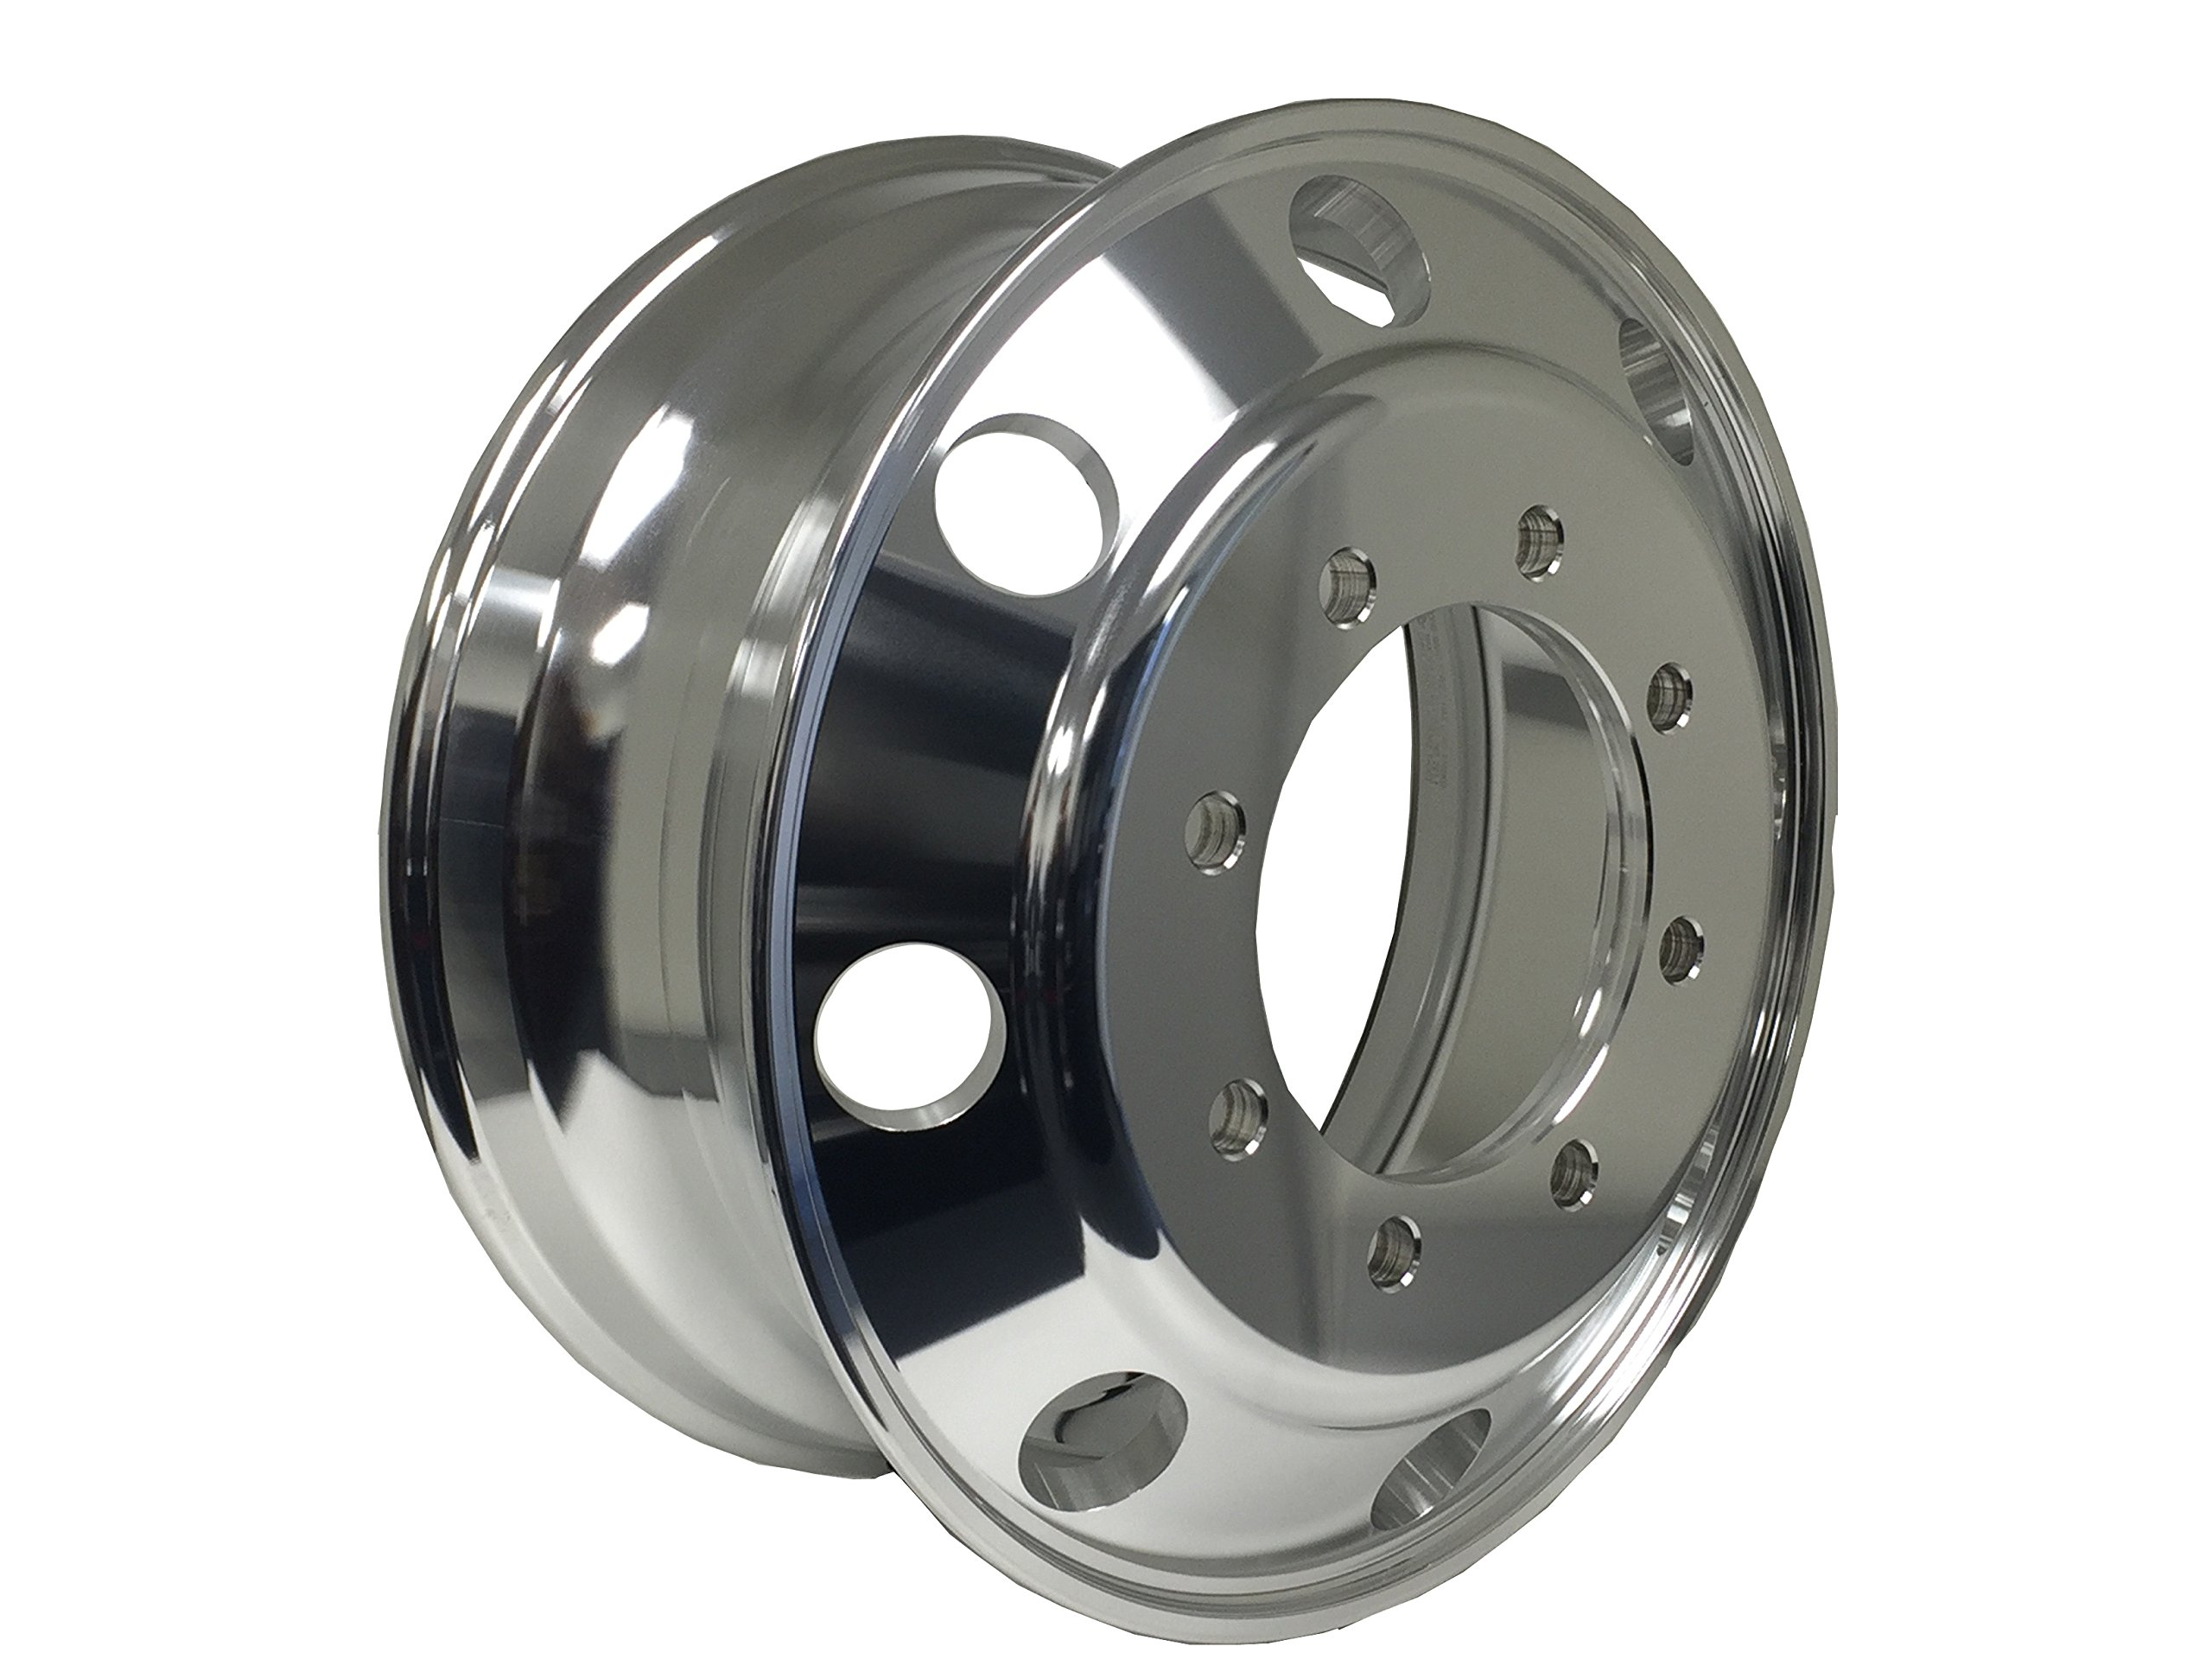 Buy Motorhome A227506 Aluminum Wheels 22 5 X 7 5 Hub Pilot Pcd 8x275 Alcoa Style Both Side Polish Finished For All Position In Cheap Price On Alibaba Com